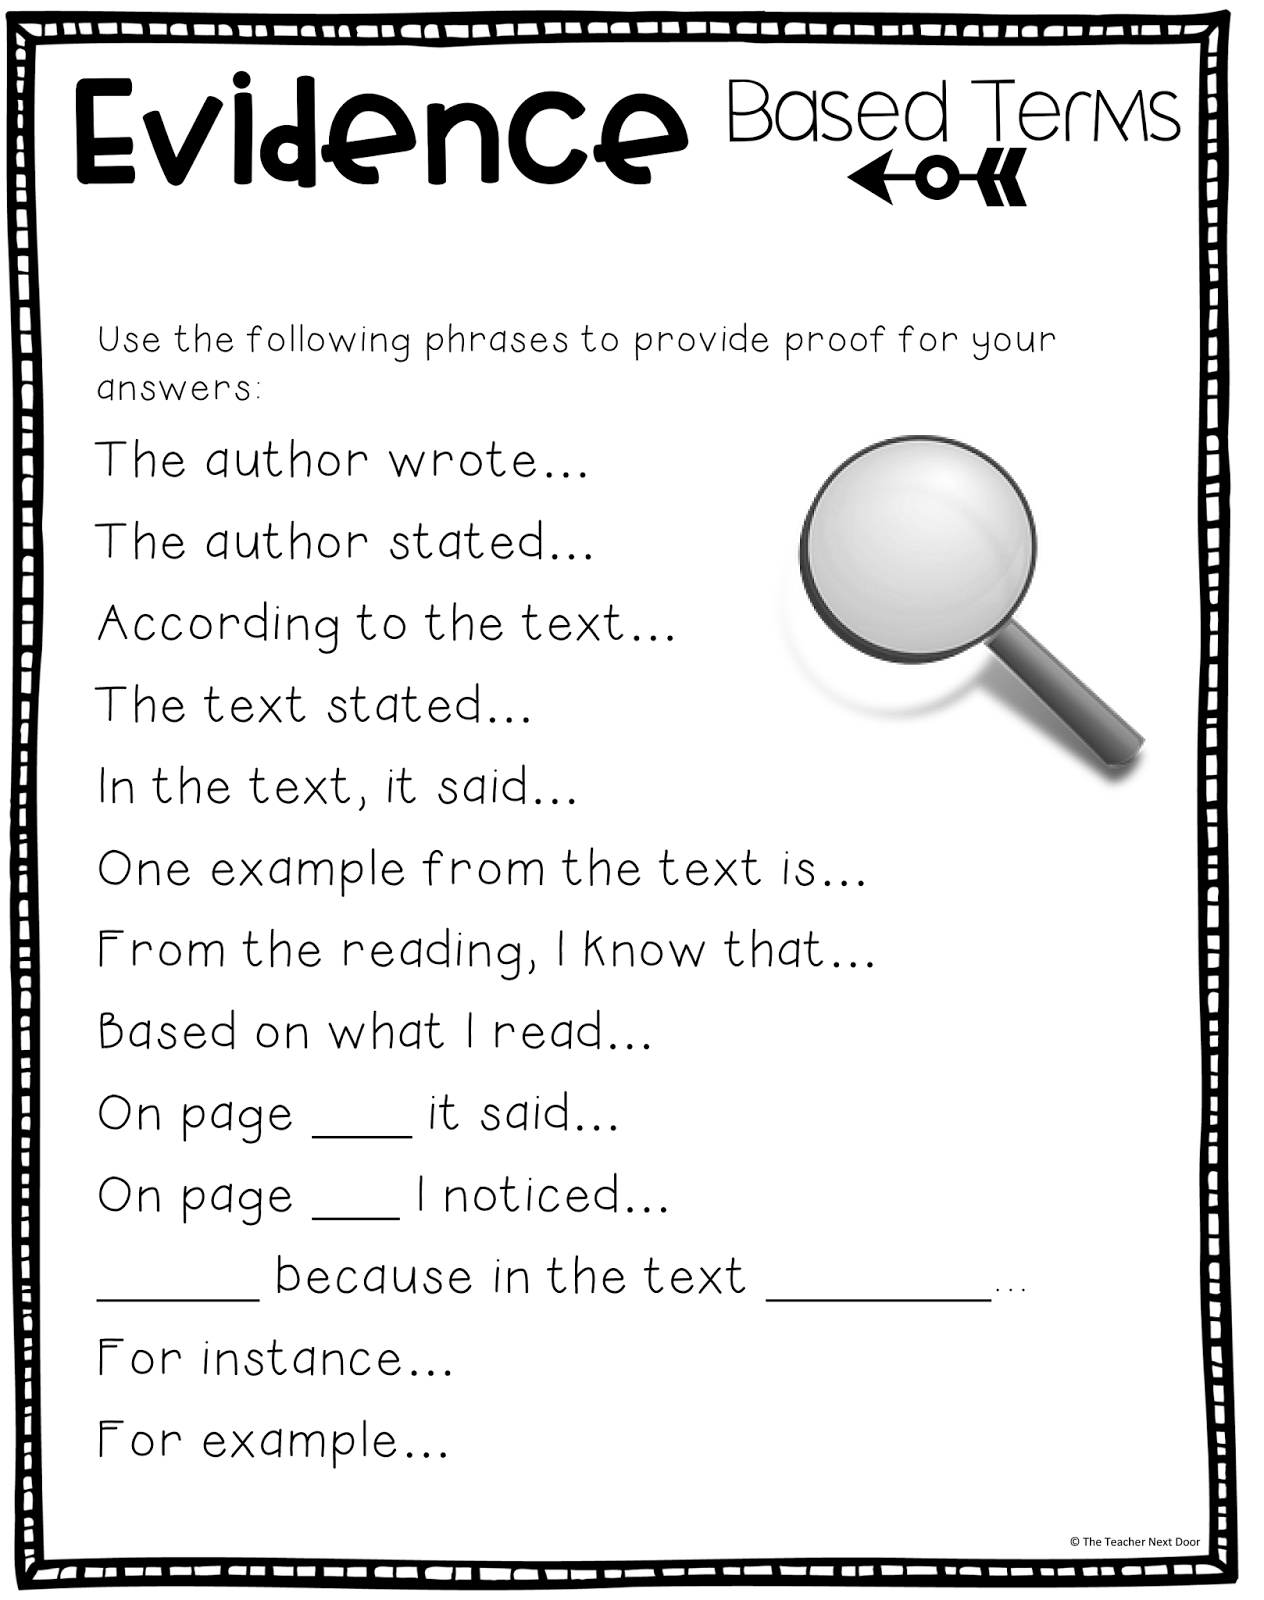 worksheet Citing Text Evidence Worksheets upper elementary snapshots citing text evidence in 6 steps 7 or the second paragraph we also spend some time working on using commas and quotation marks properly which is a skill th